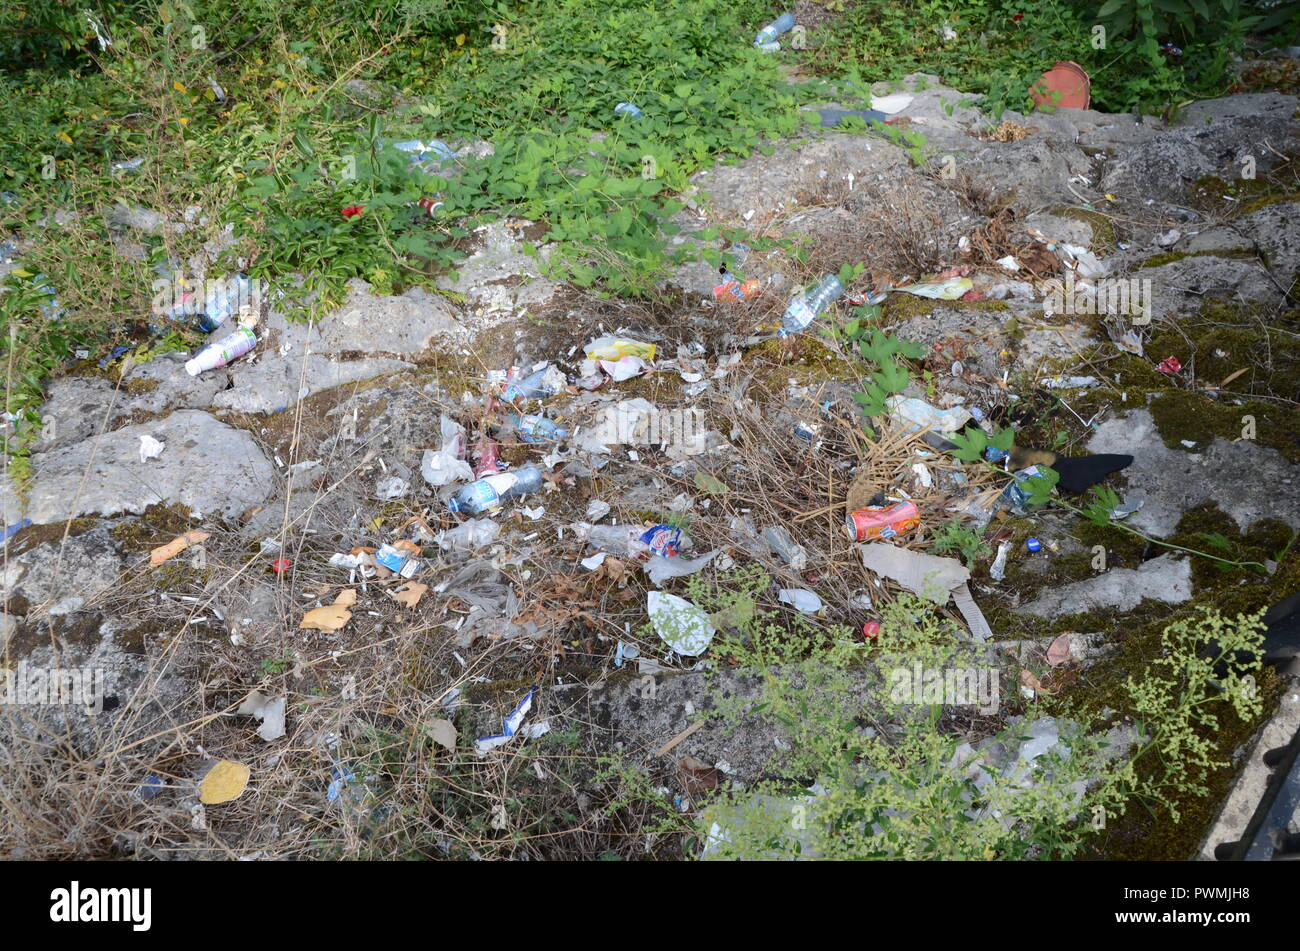 a pile of litter near lake skadar montenegro with cans and bottles and plastic bags etc - Stock Image